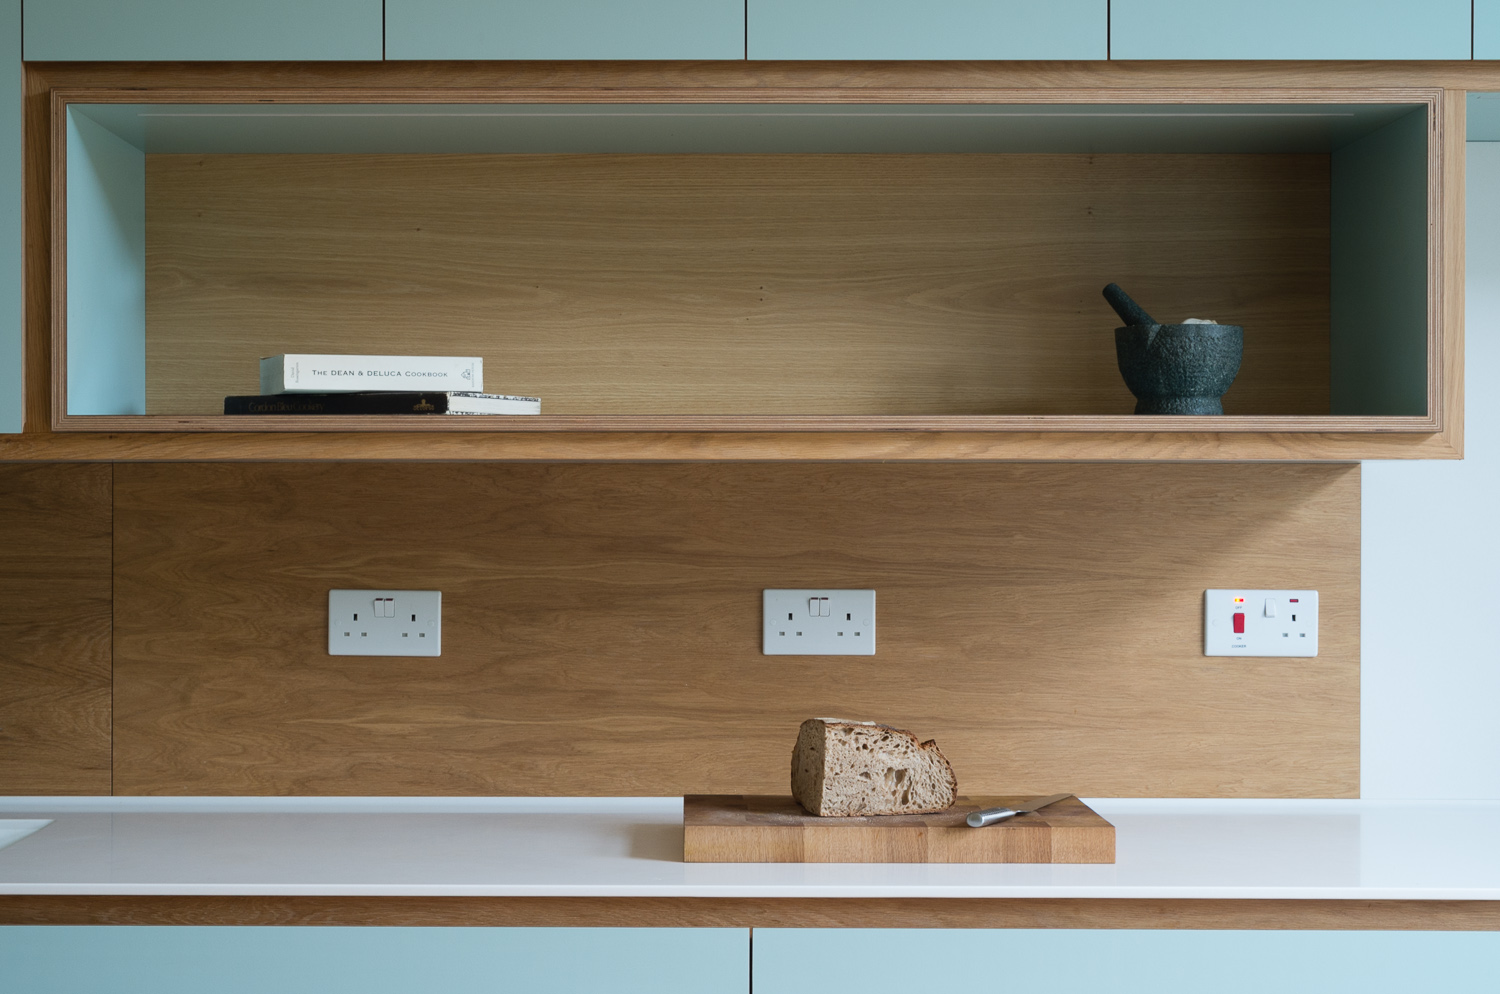 Copy of LG HiMacs work surfaces and spray lacquered oak veneered back splashes